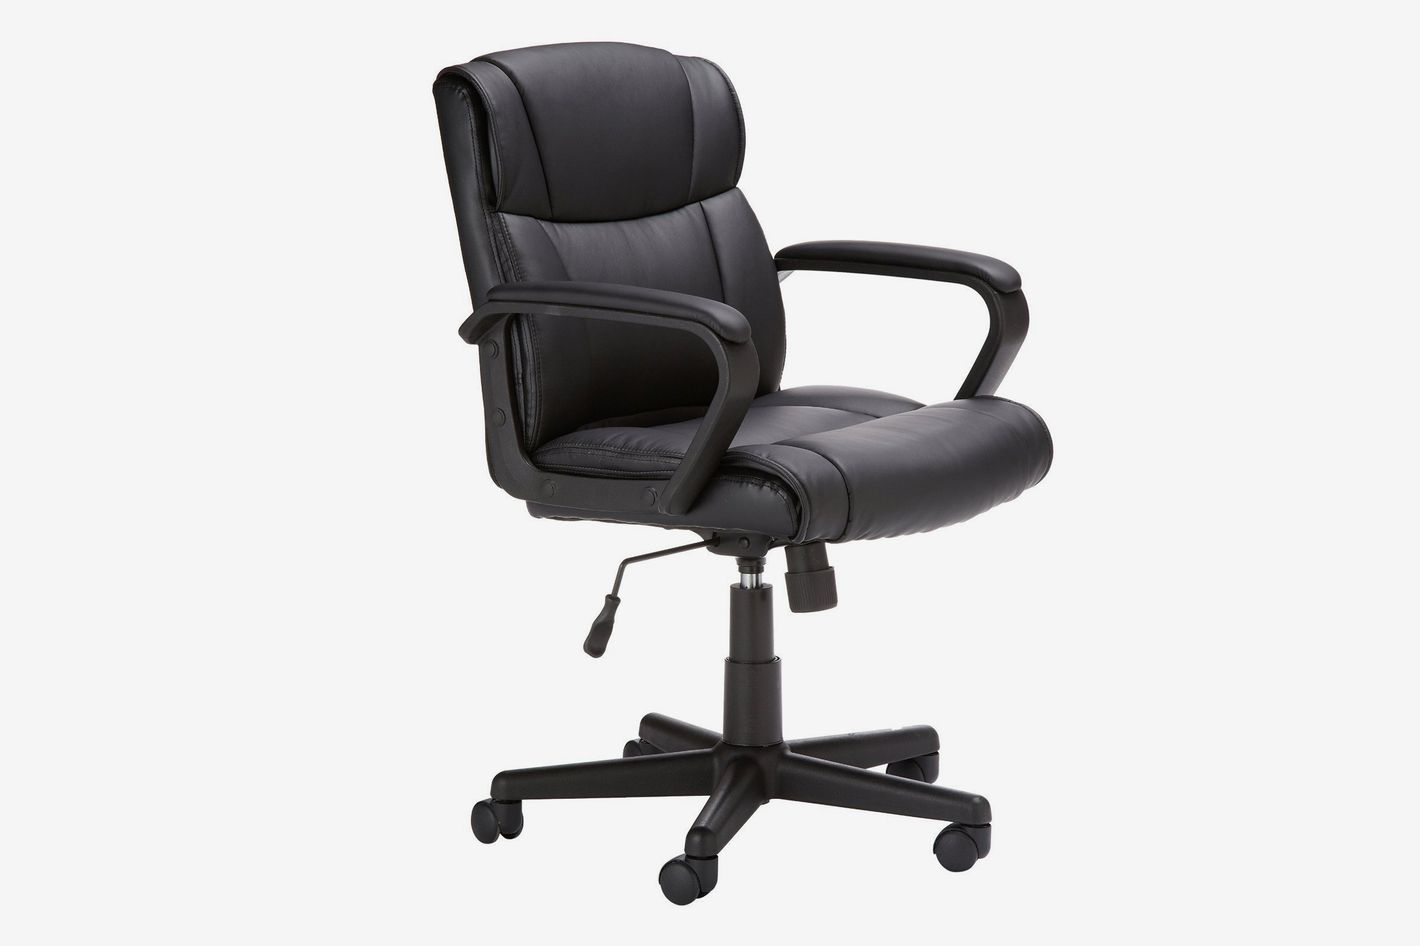 16 best office chairs and home office chairs 2018